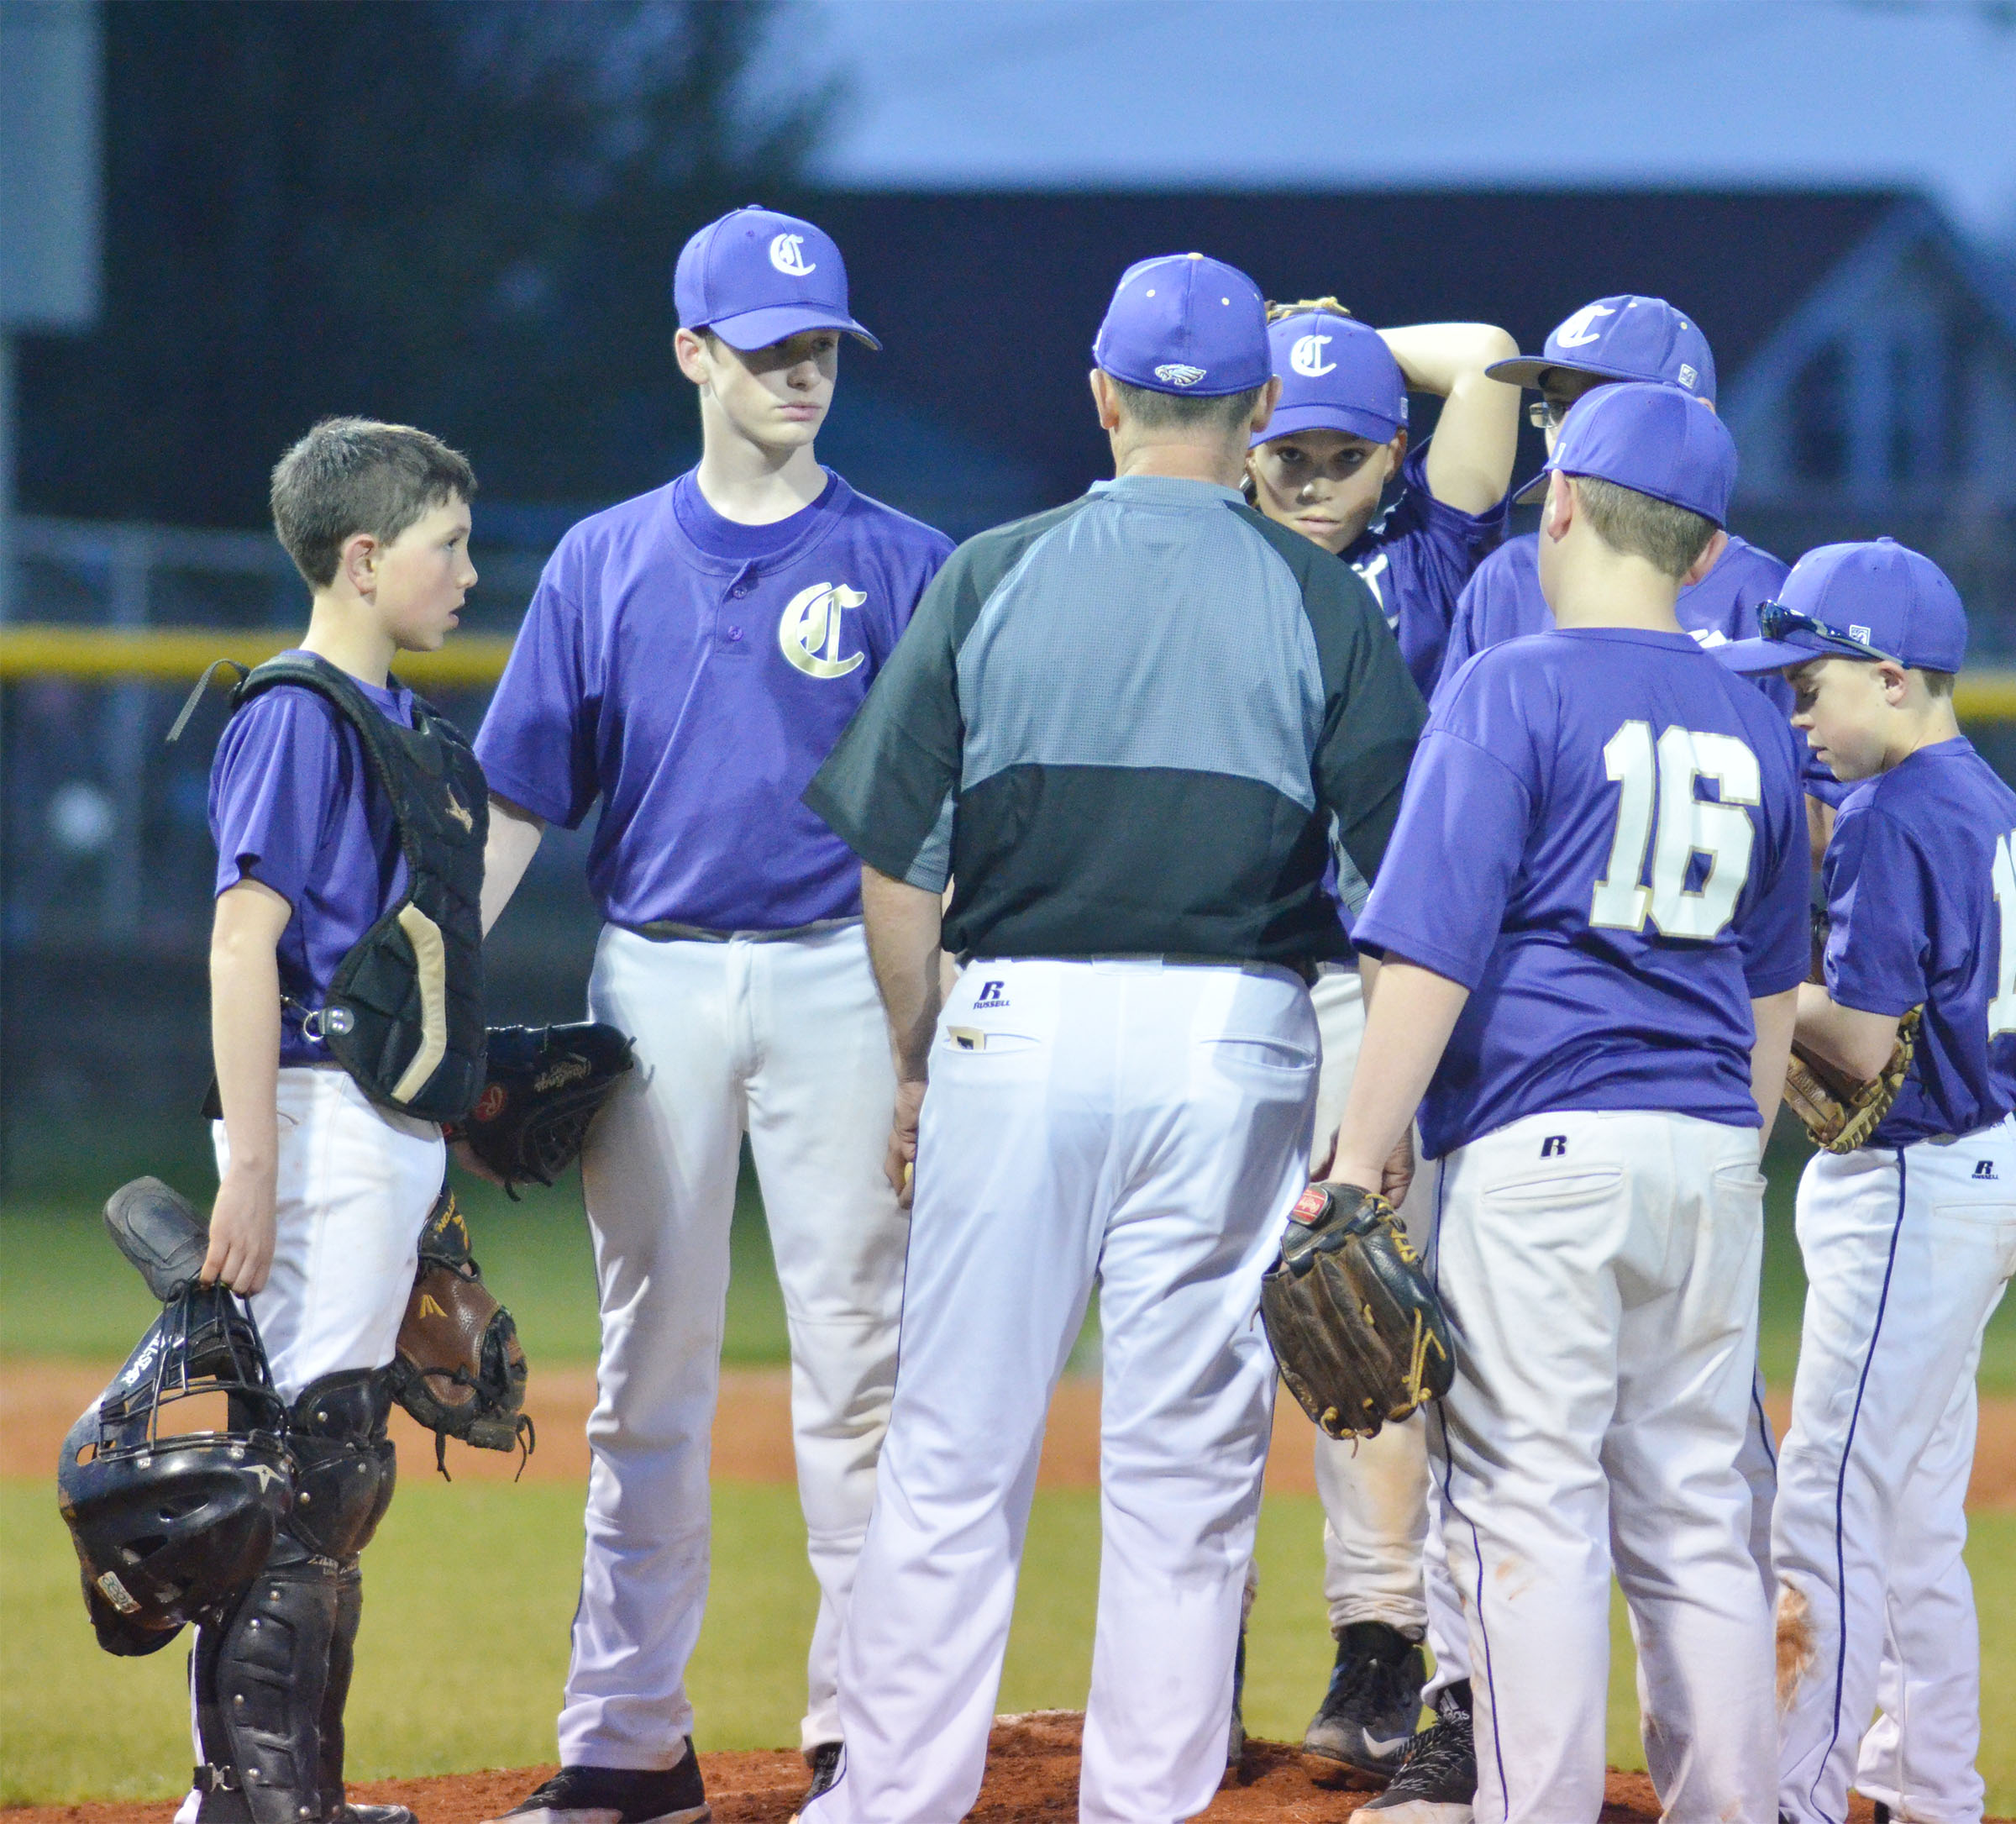 CMS head baseball coach Lynn Kearney talks with his players.